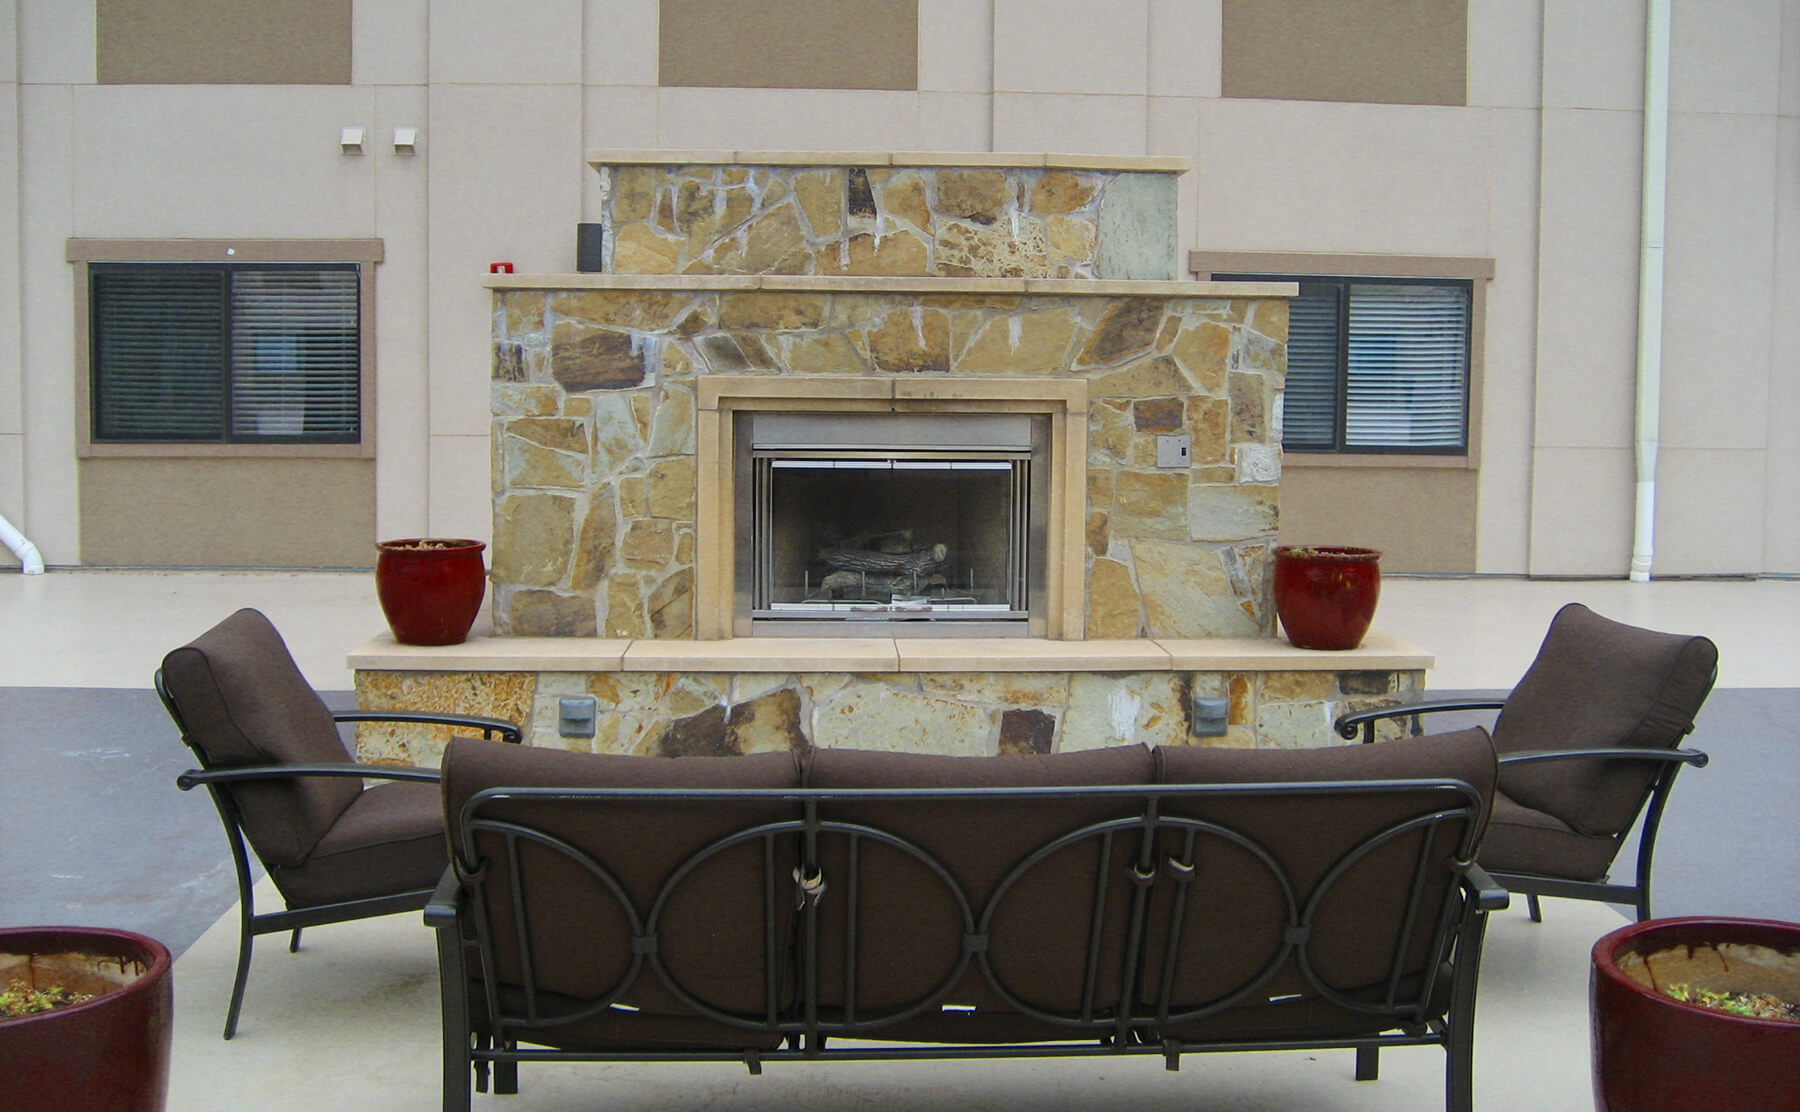 Apartments in McKinney with the Fire Pits